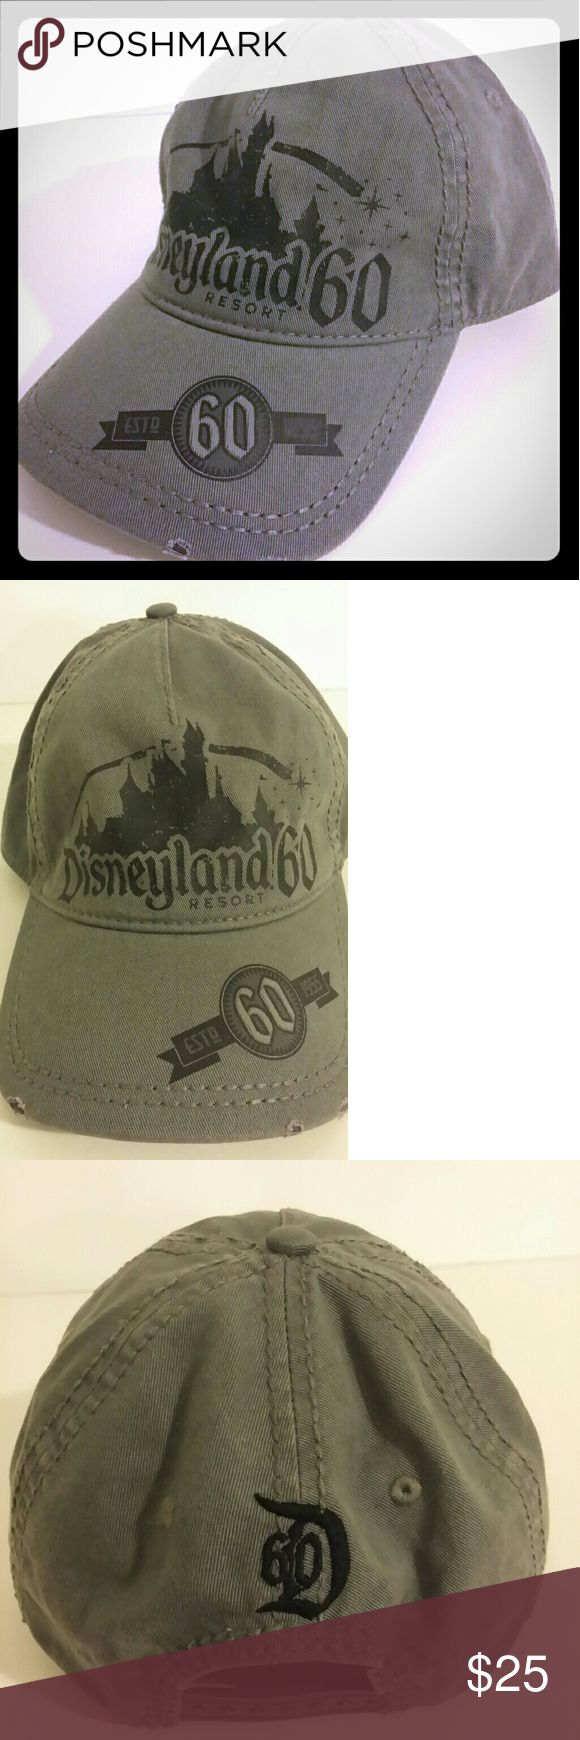 Disney parks resorts Disneyland Hat Disney Parks Disneyland Resort 60th anniversary Baseball Cap  HTF Adult Size  Snapback Adj  Gray/ Black Distressed Very good condition Disneyland Resort Accessories Hats